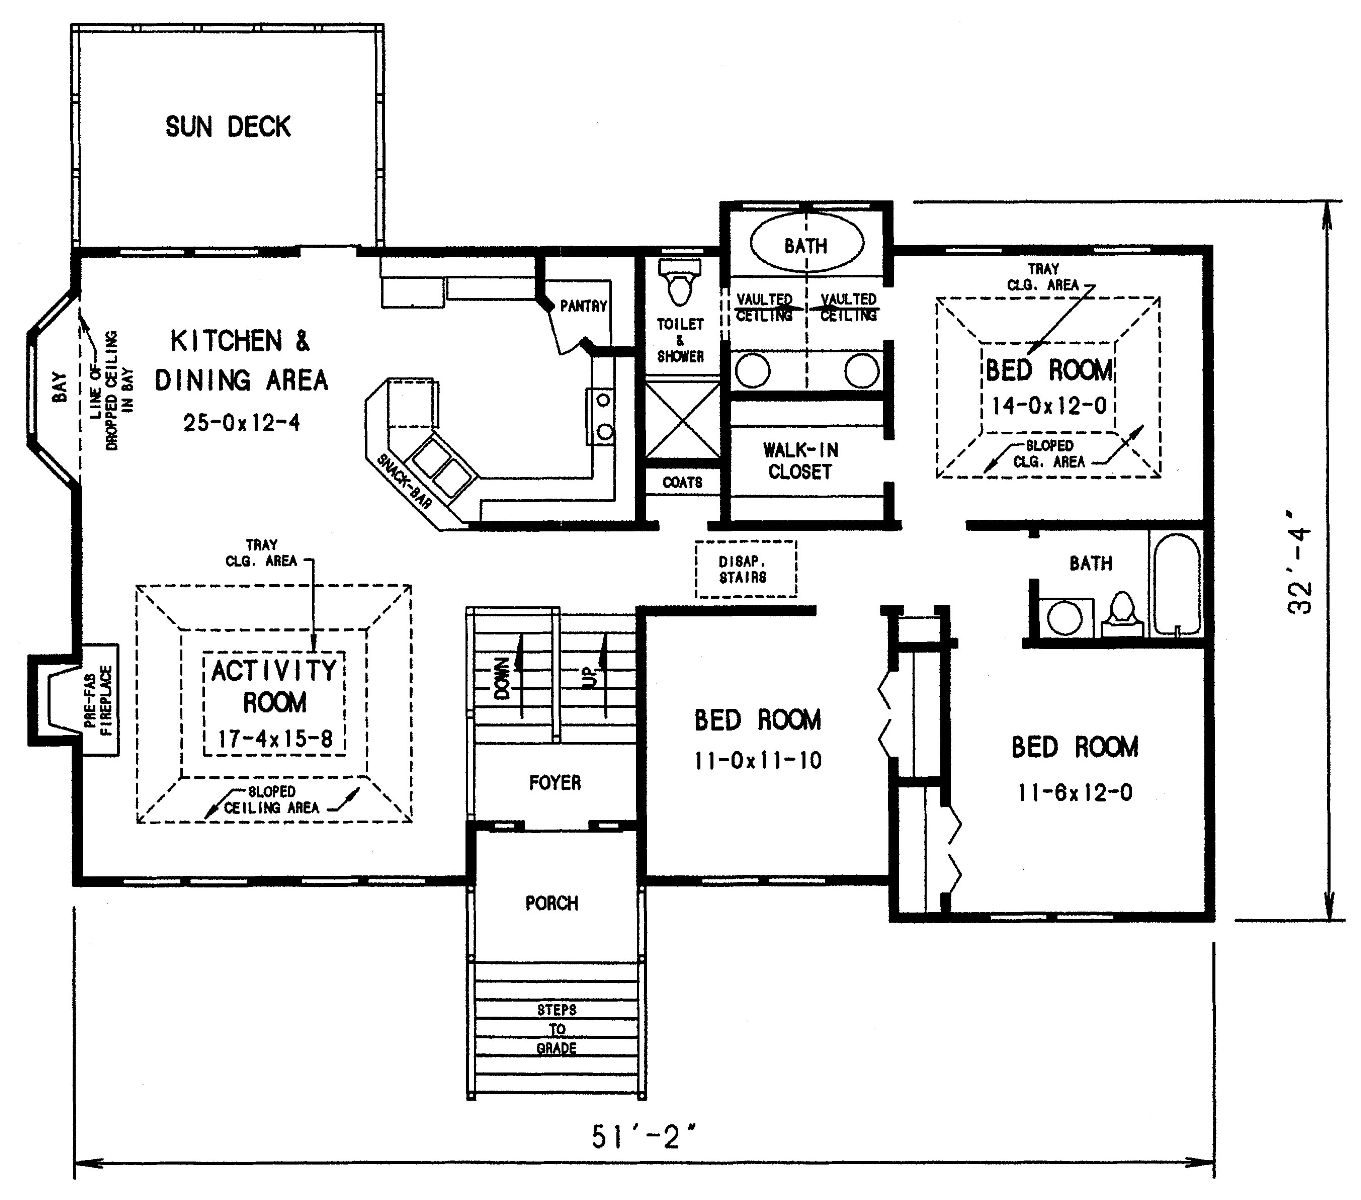 Cottage House Plan with 3 Bedrooms and 2.5 Baths - Plan 3303 on square barn house floor plan, 4 family plan, 2 bedroom bungalow floor plan, 12 sq ft floor plan, aspen floor plan, bi-level pool, bi-level breakfast bar, bi homes floor plan,